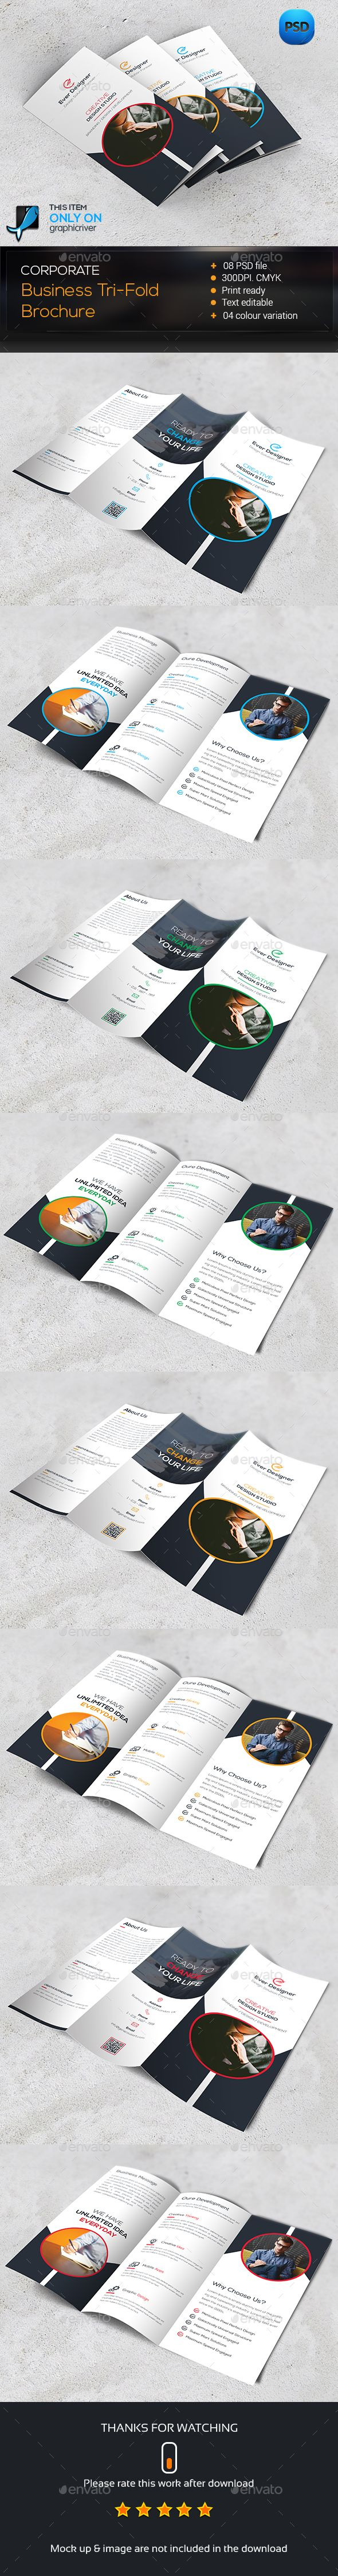 Trifold Brochure Template PSD #design Download: http://graphicriver.net/item/trifold-brochure/14350209?ref=ksioks